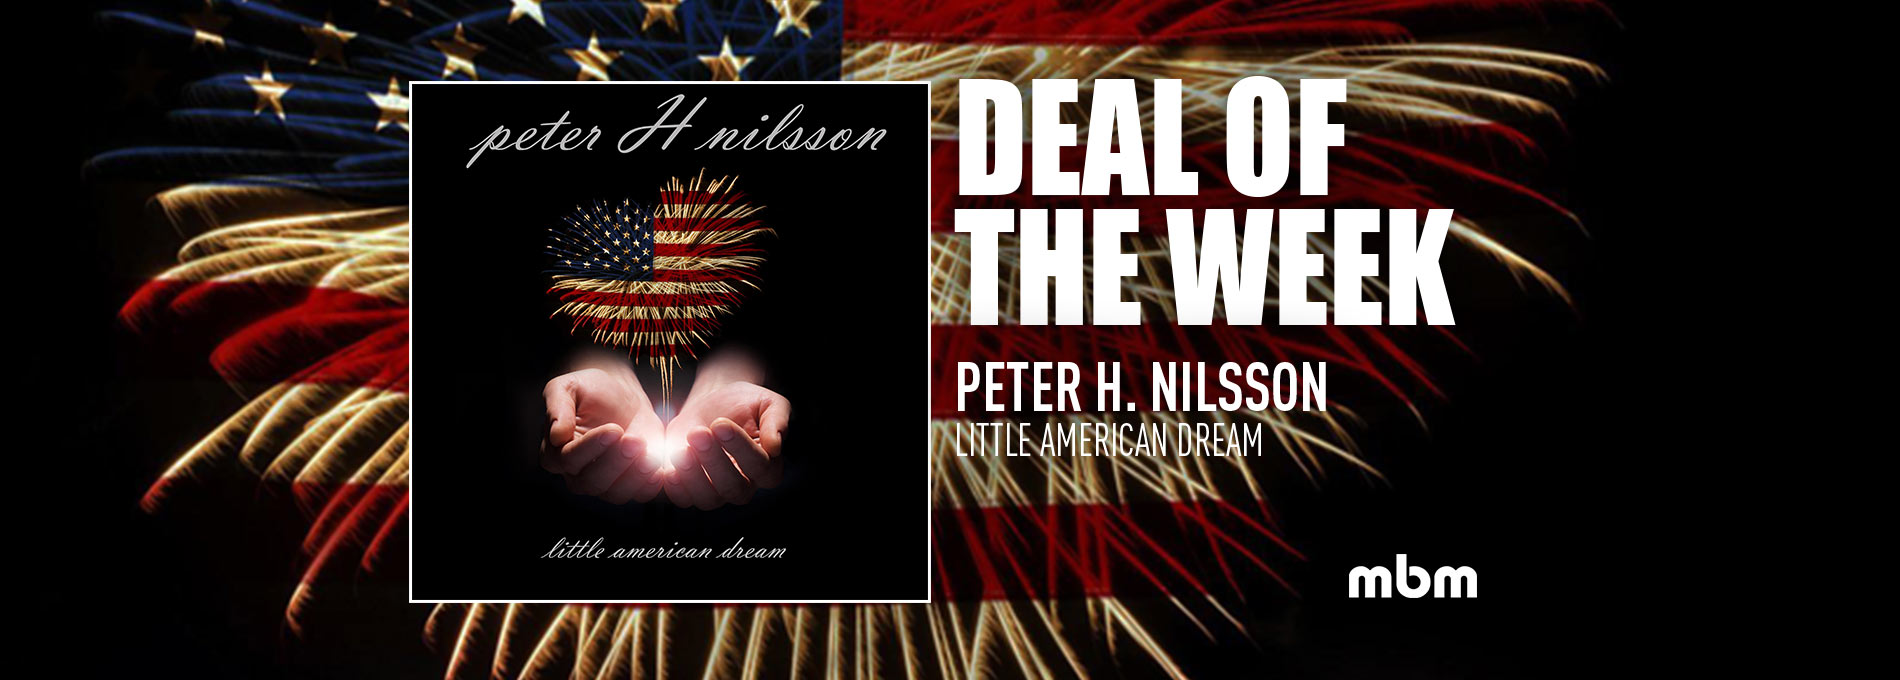 Deal Of The Week: NILSSON PETER H. - Little American Dream